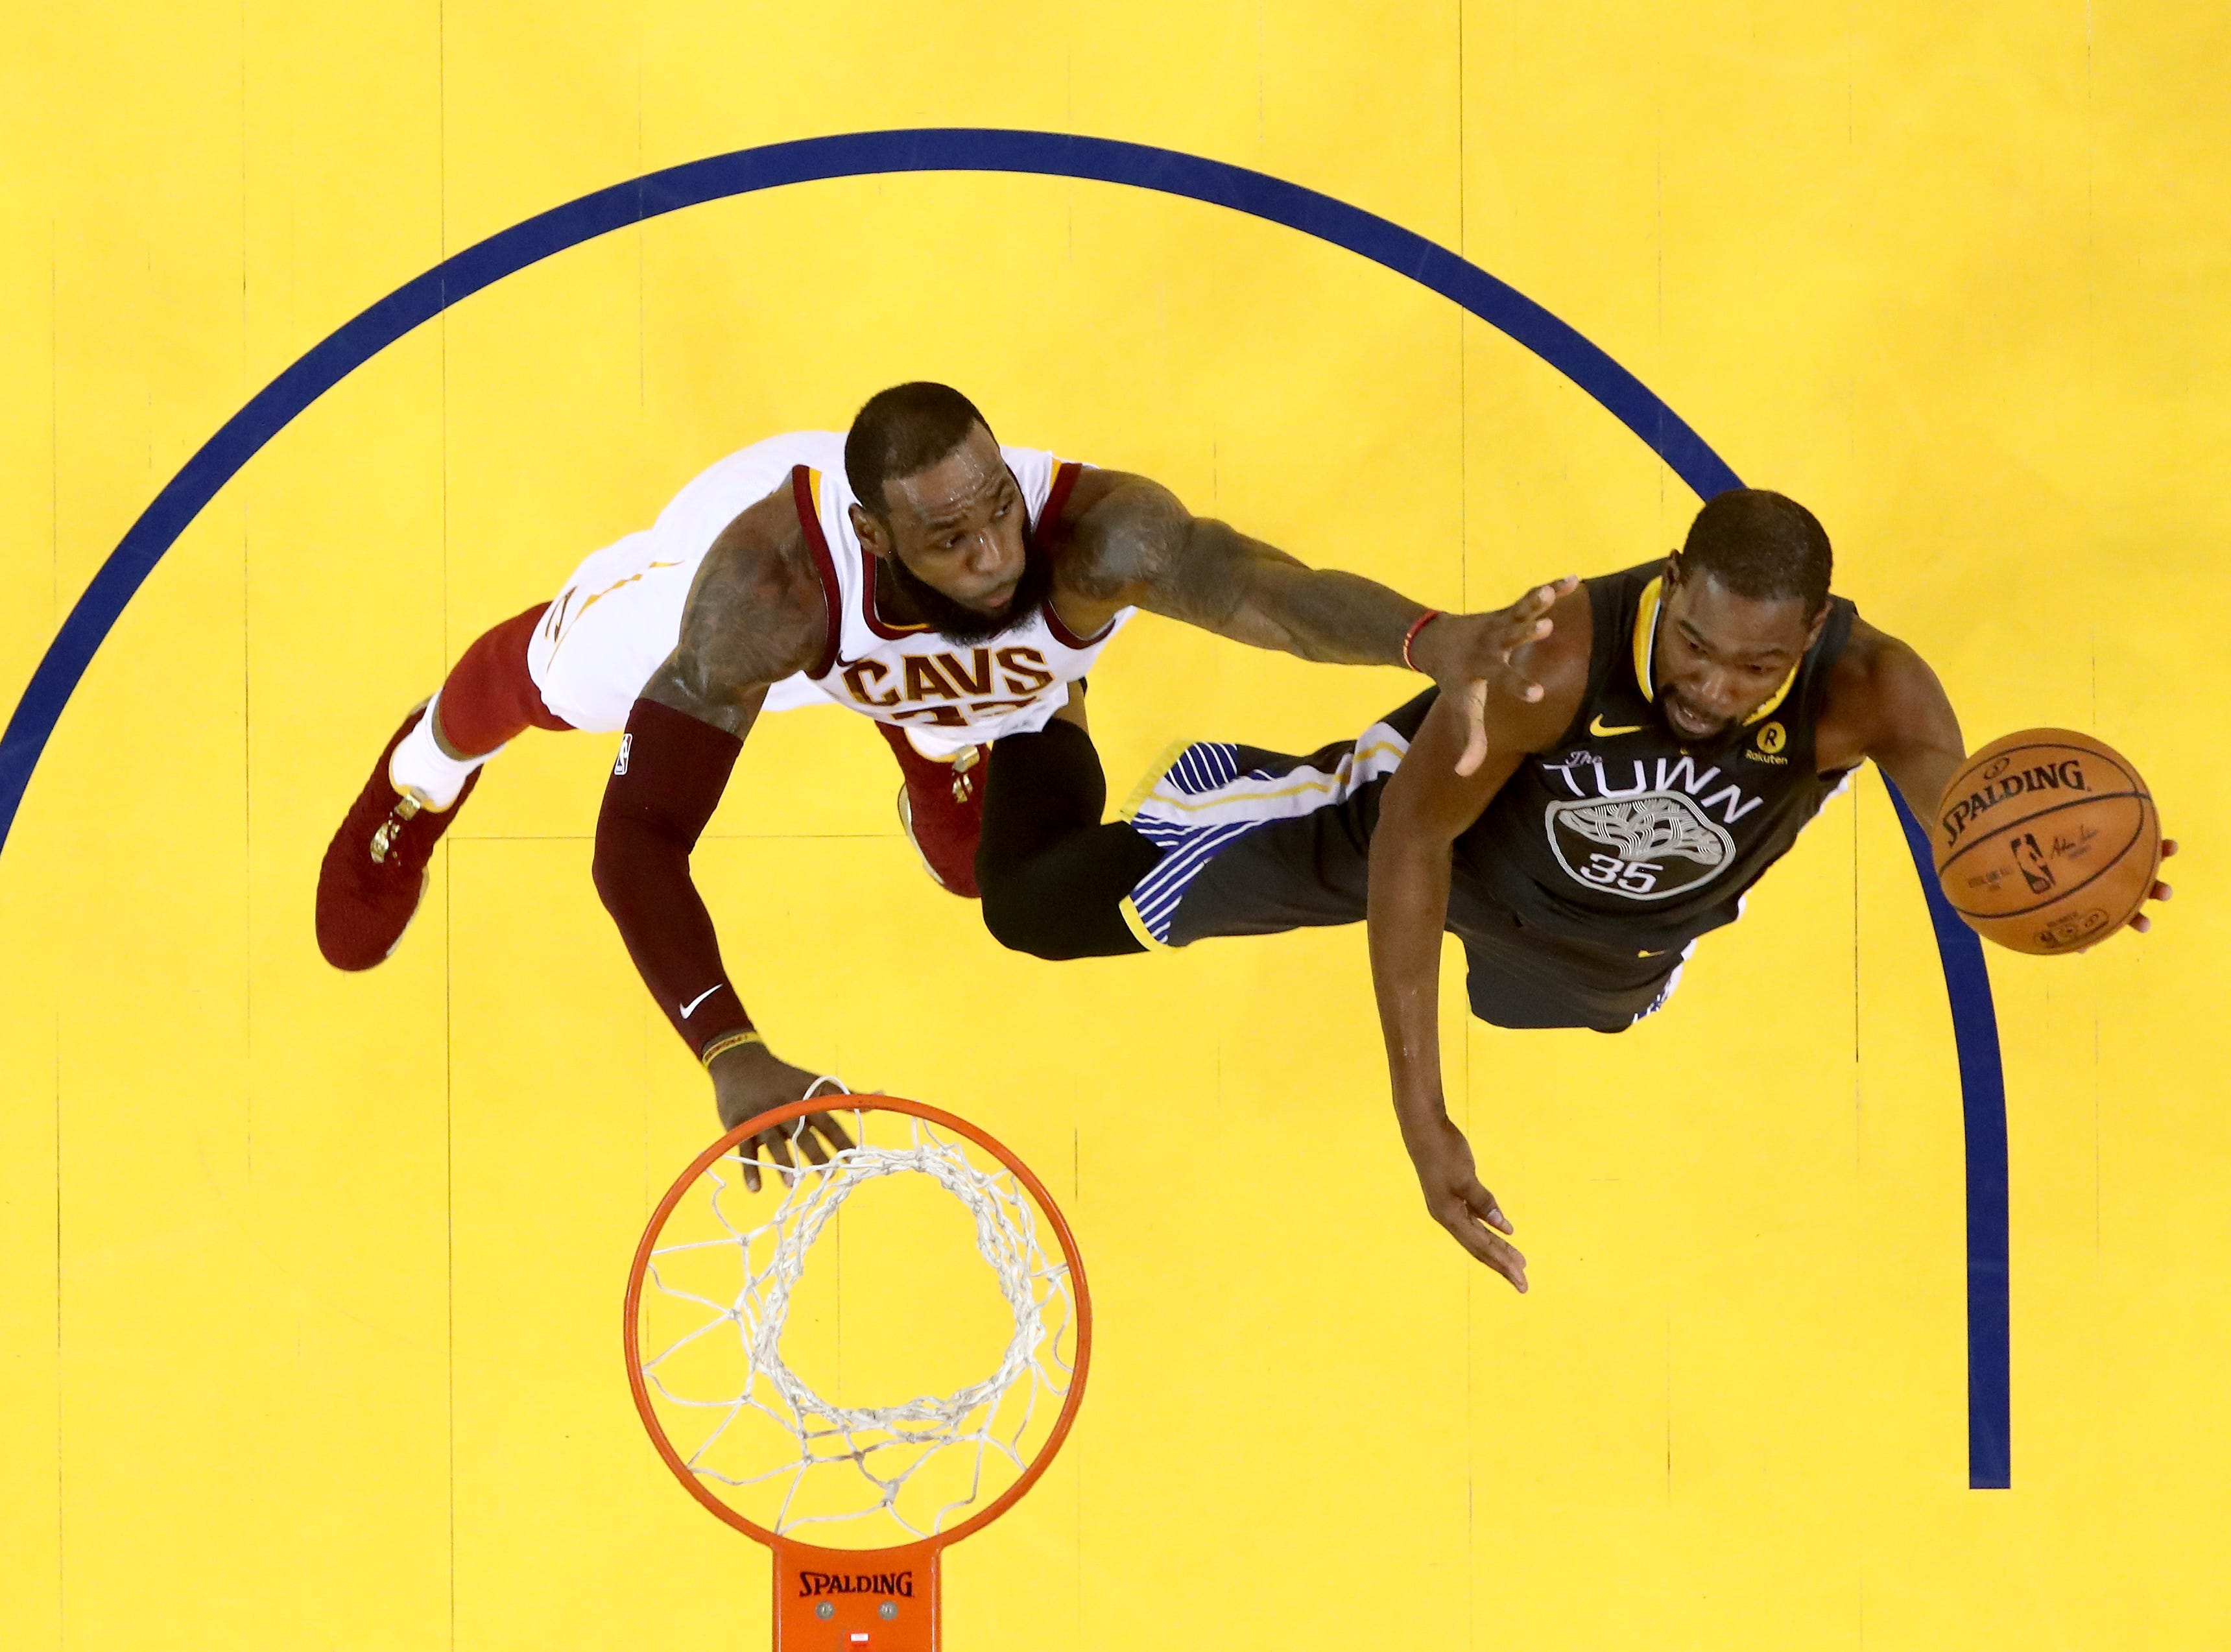 June 3, 2018: Kevin Durant of the Golden State Warriors attempts a layup against LeBron James of the Cleveland Cavaliers in Game 2 of the 2018 NBA Finals in Oakland, Calif